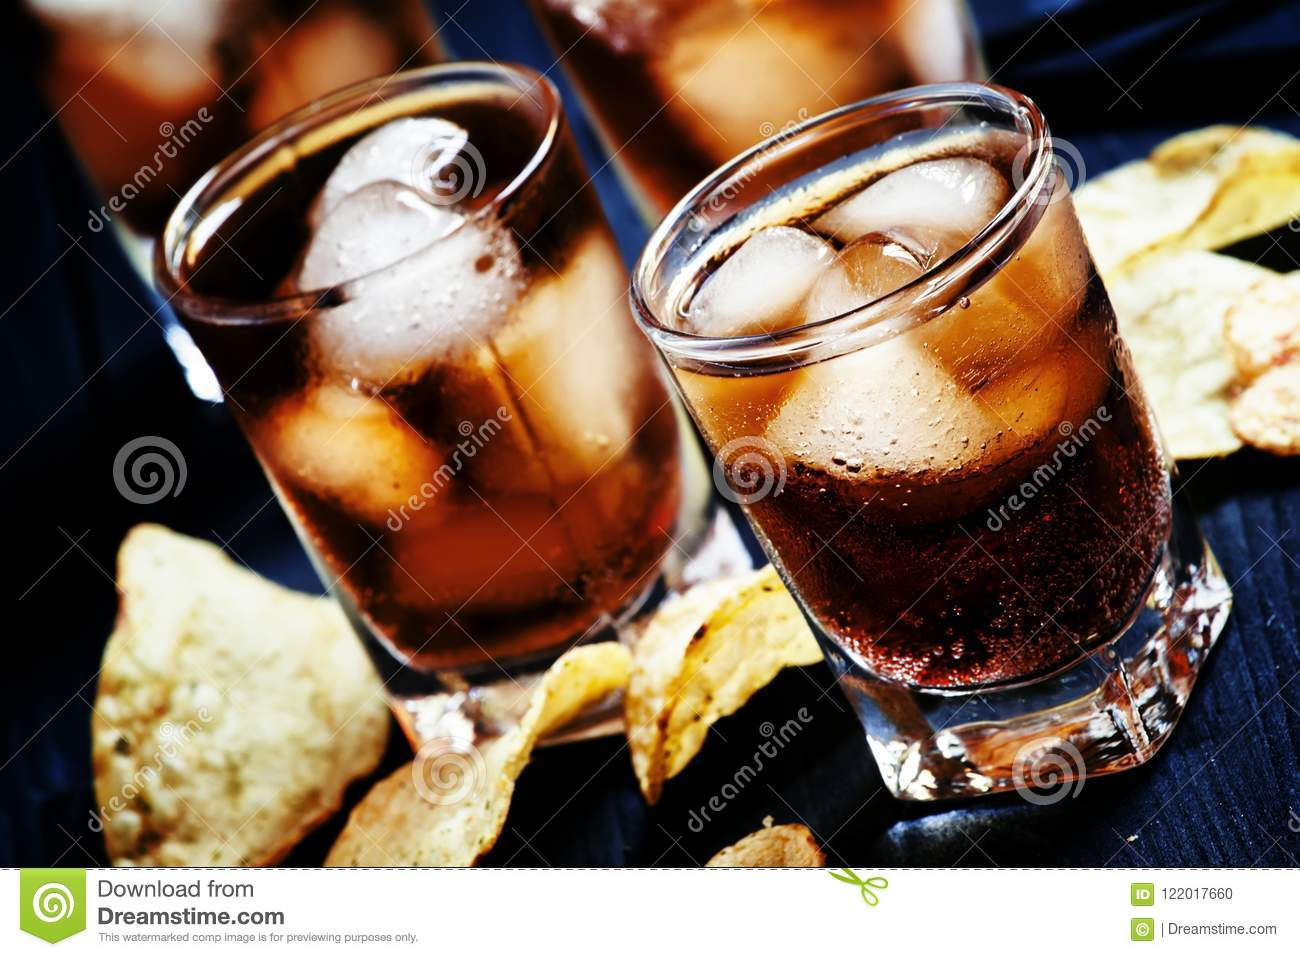 Cold Cola With Ice In Glasses And Potato Chips On A Dark